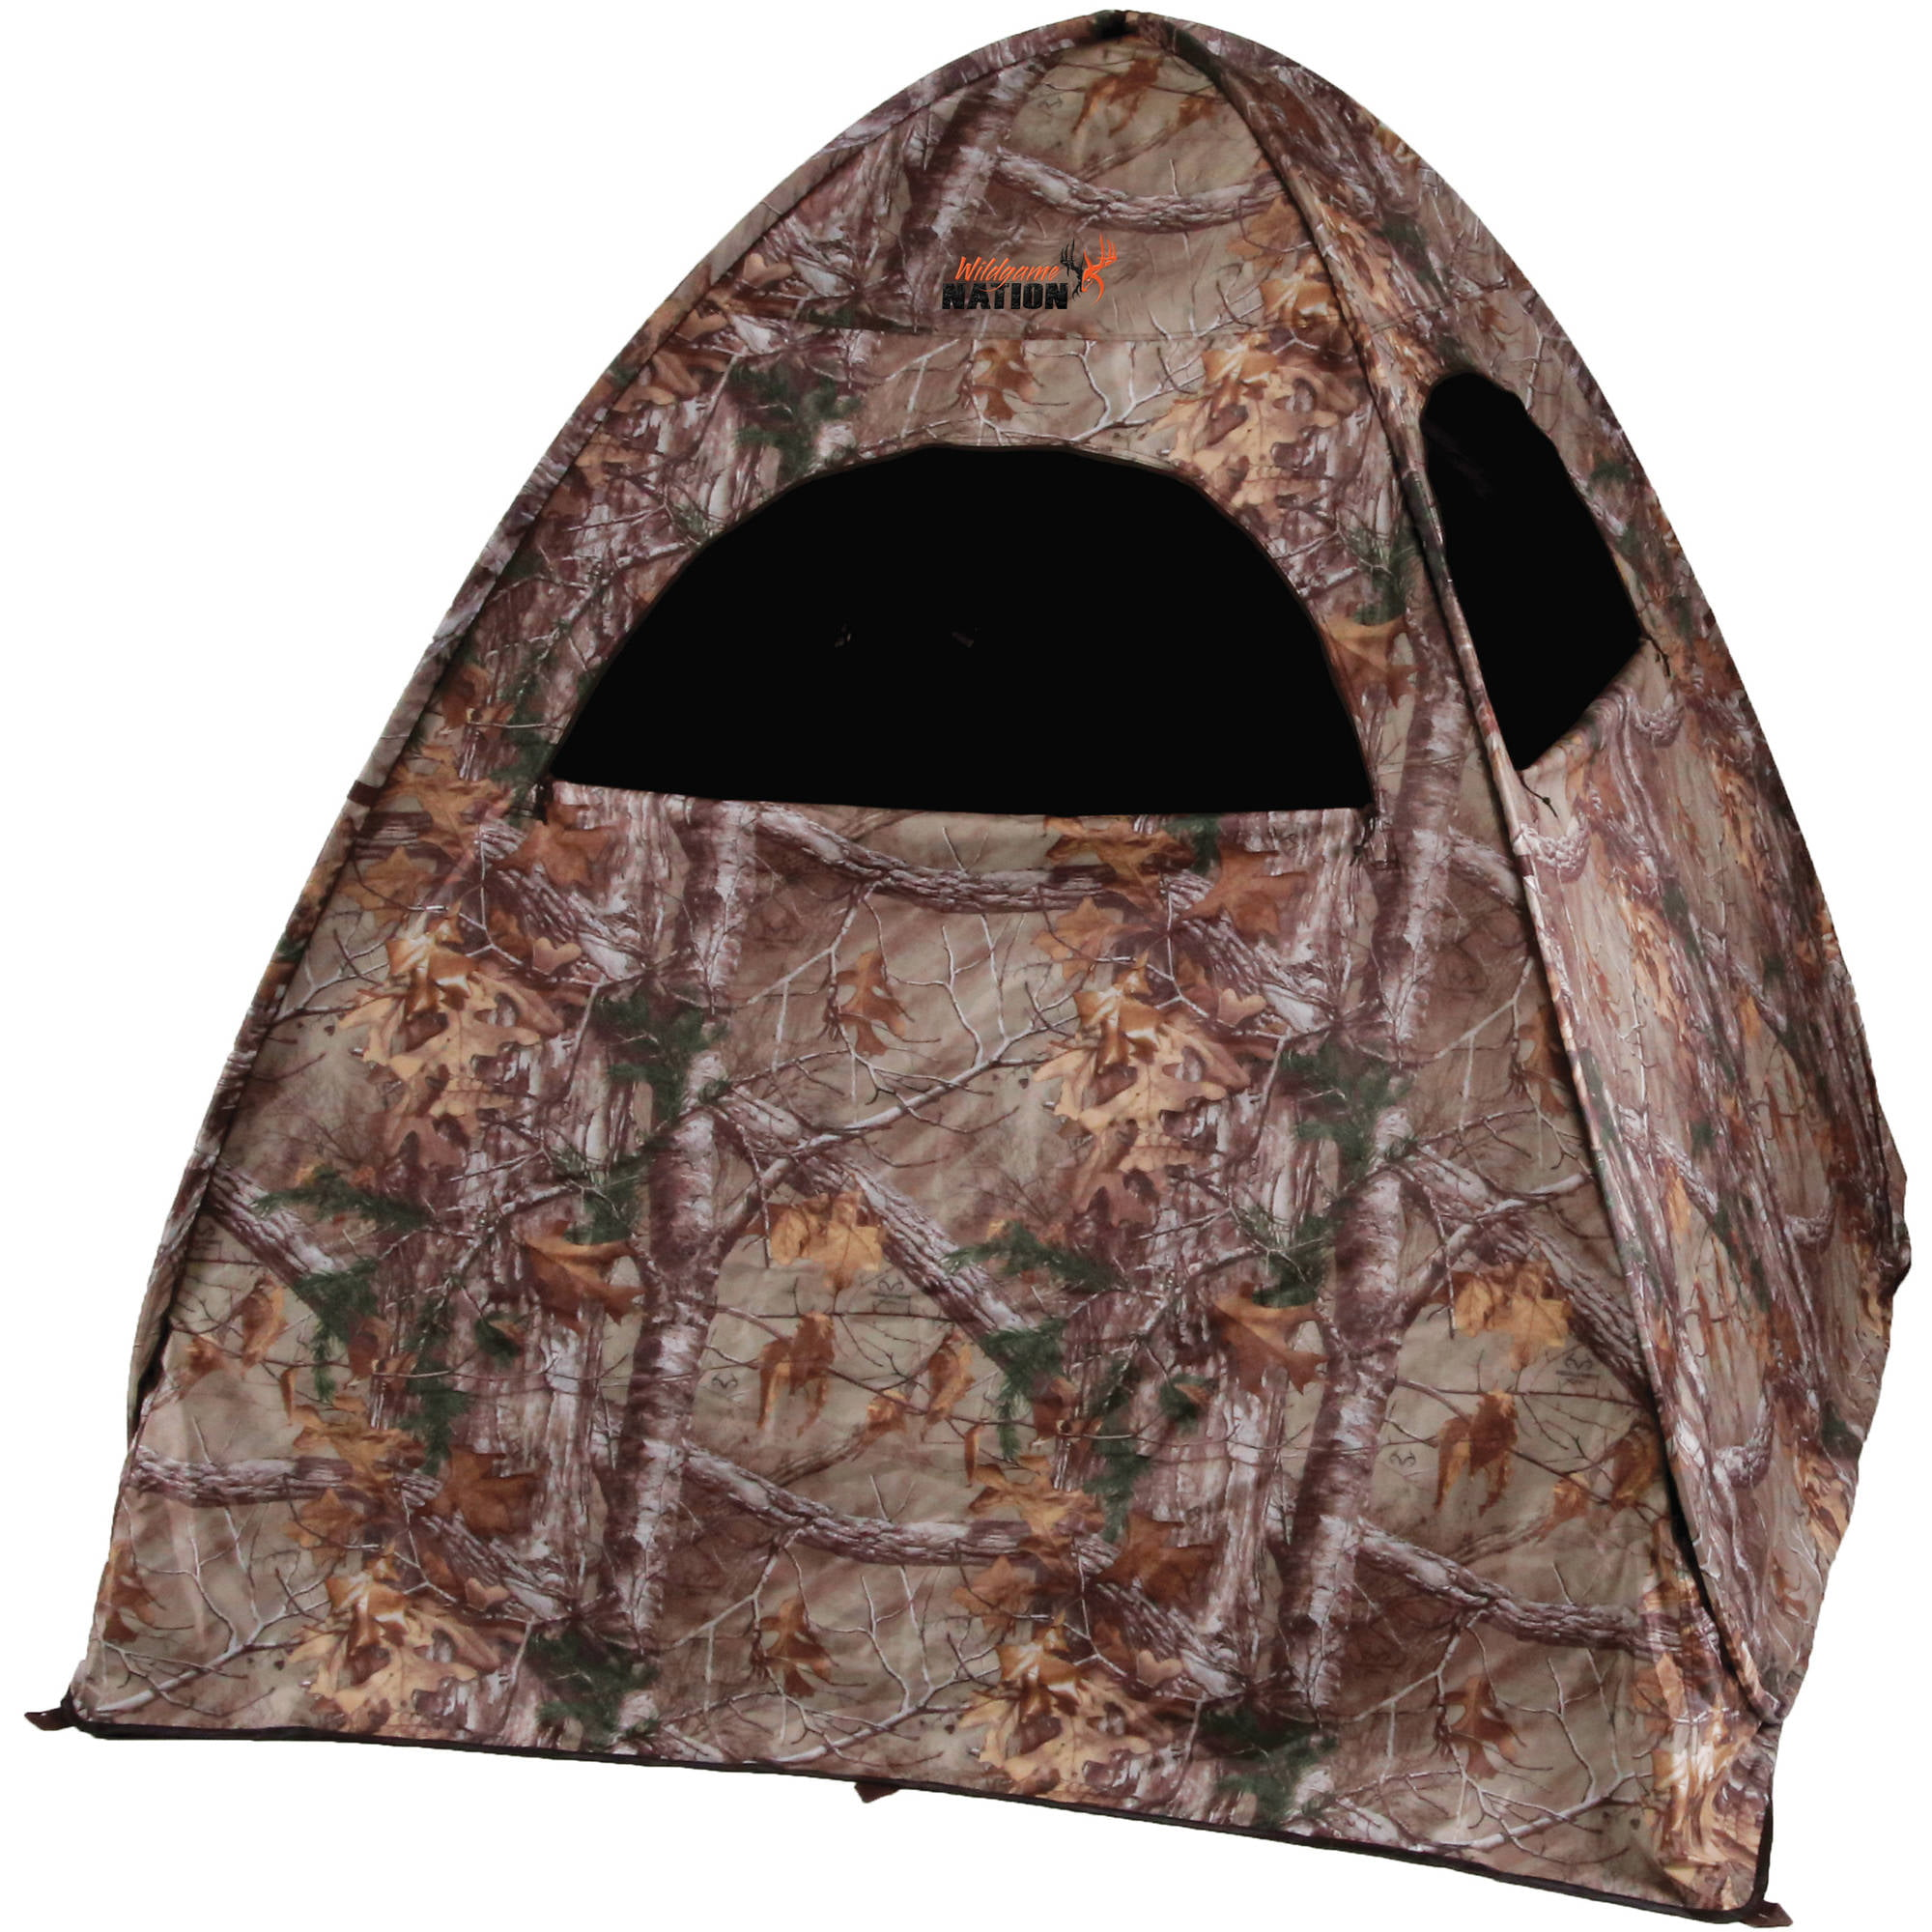 Pop-Up Style  sc 1 st  Walmart & Hunting Blinds - Walmart.com